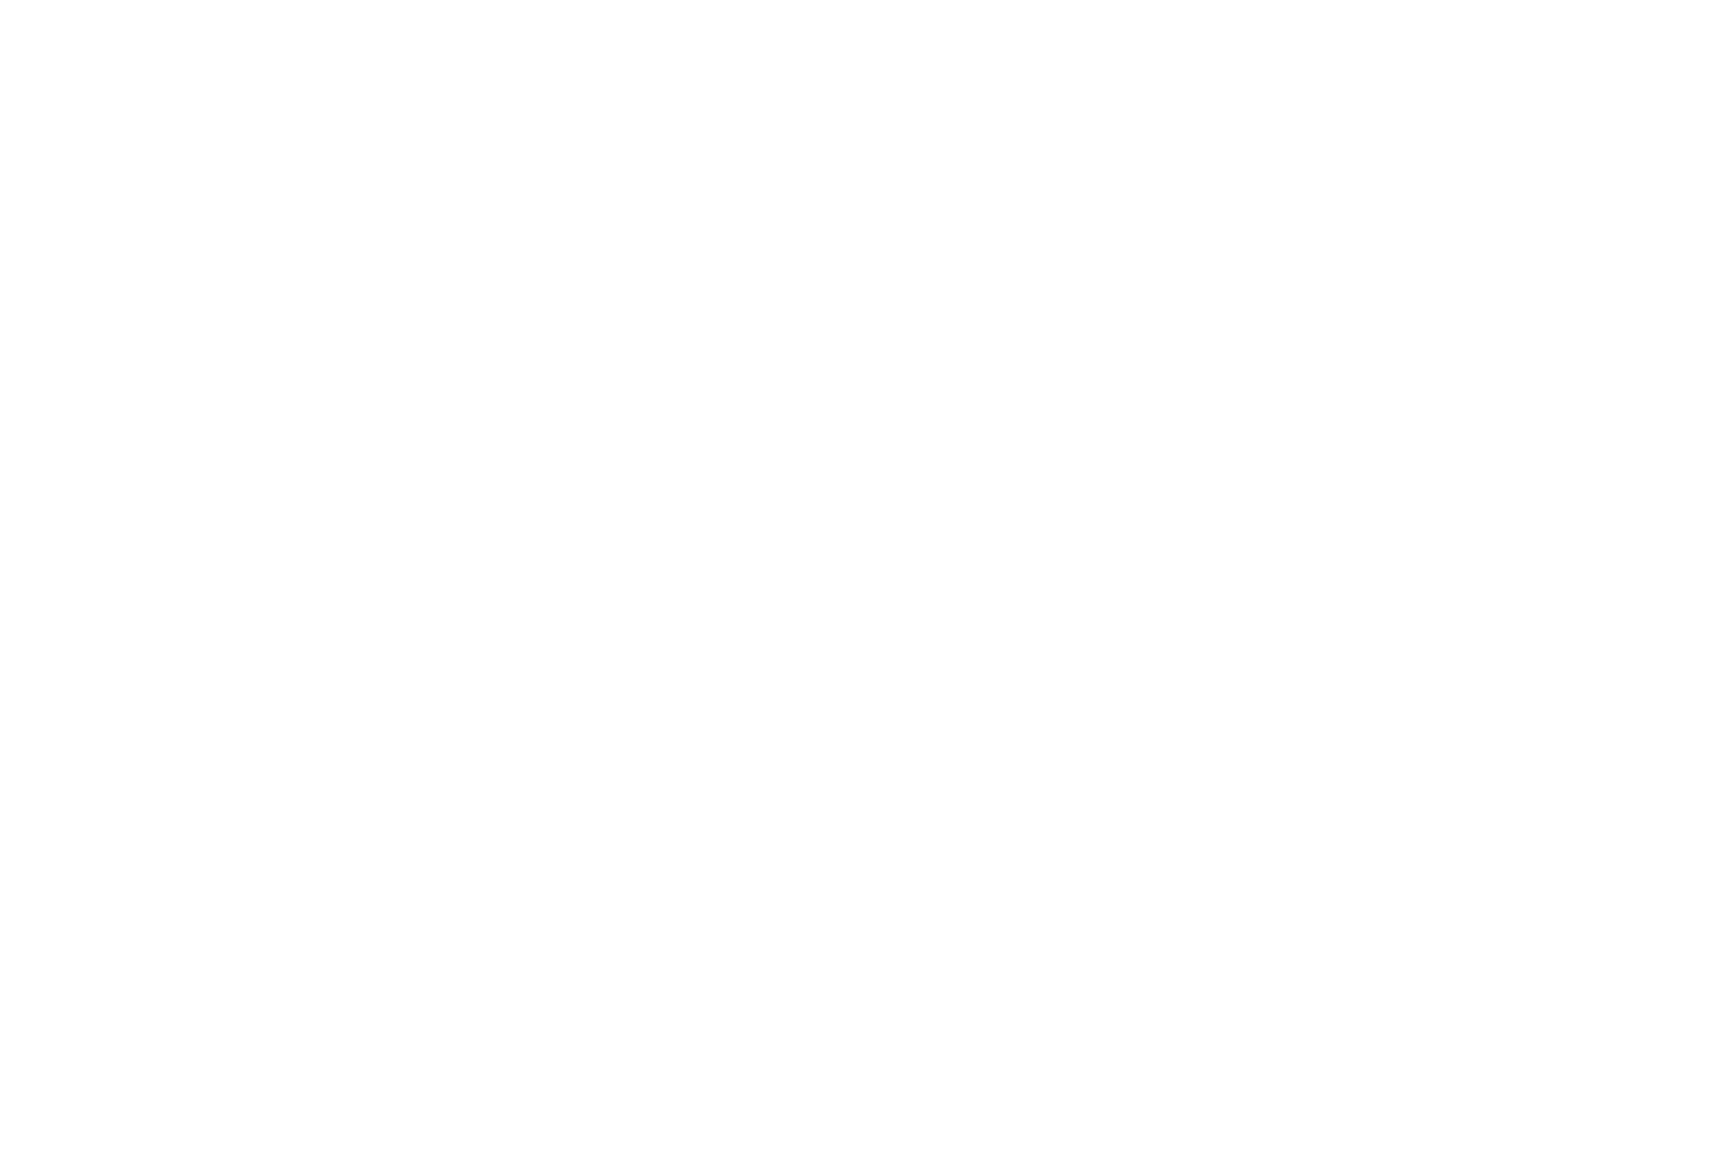 OFFICIAL SELECTION - It Came From the Sky Film Festival - 2020